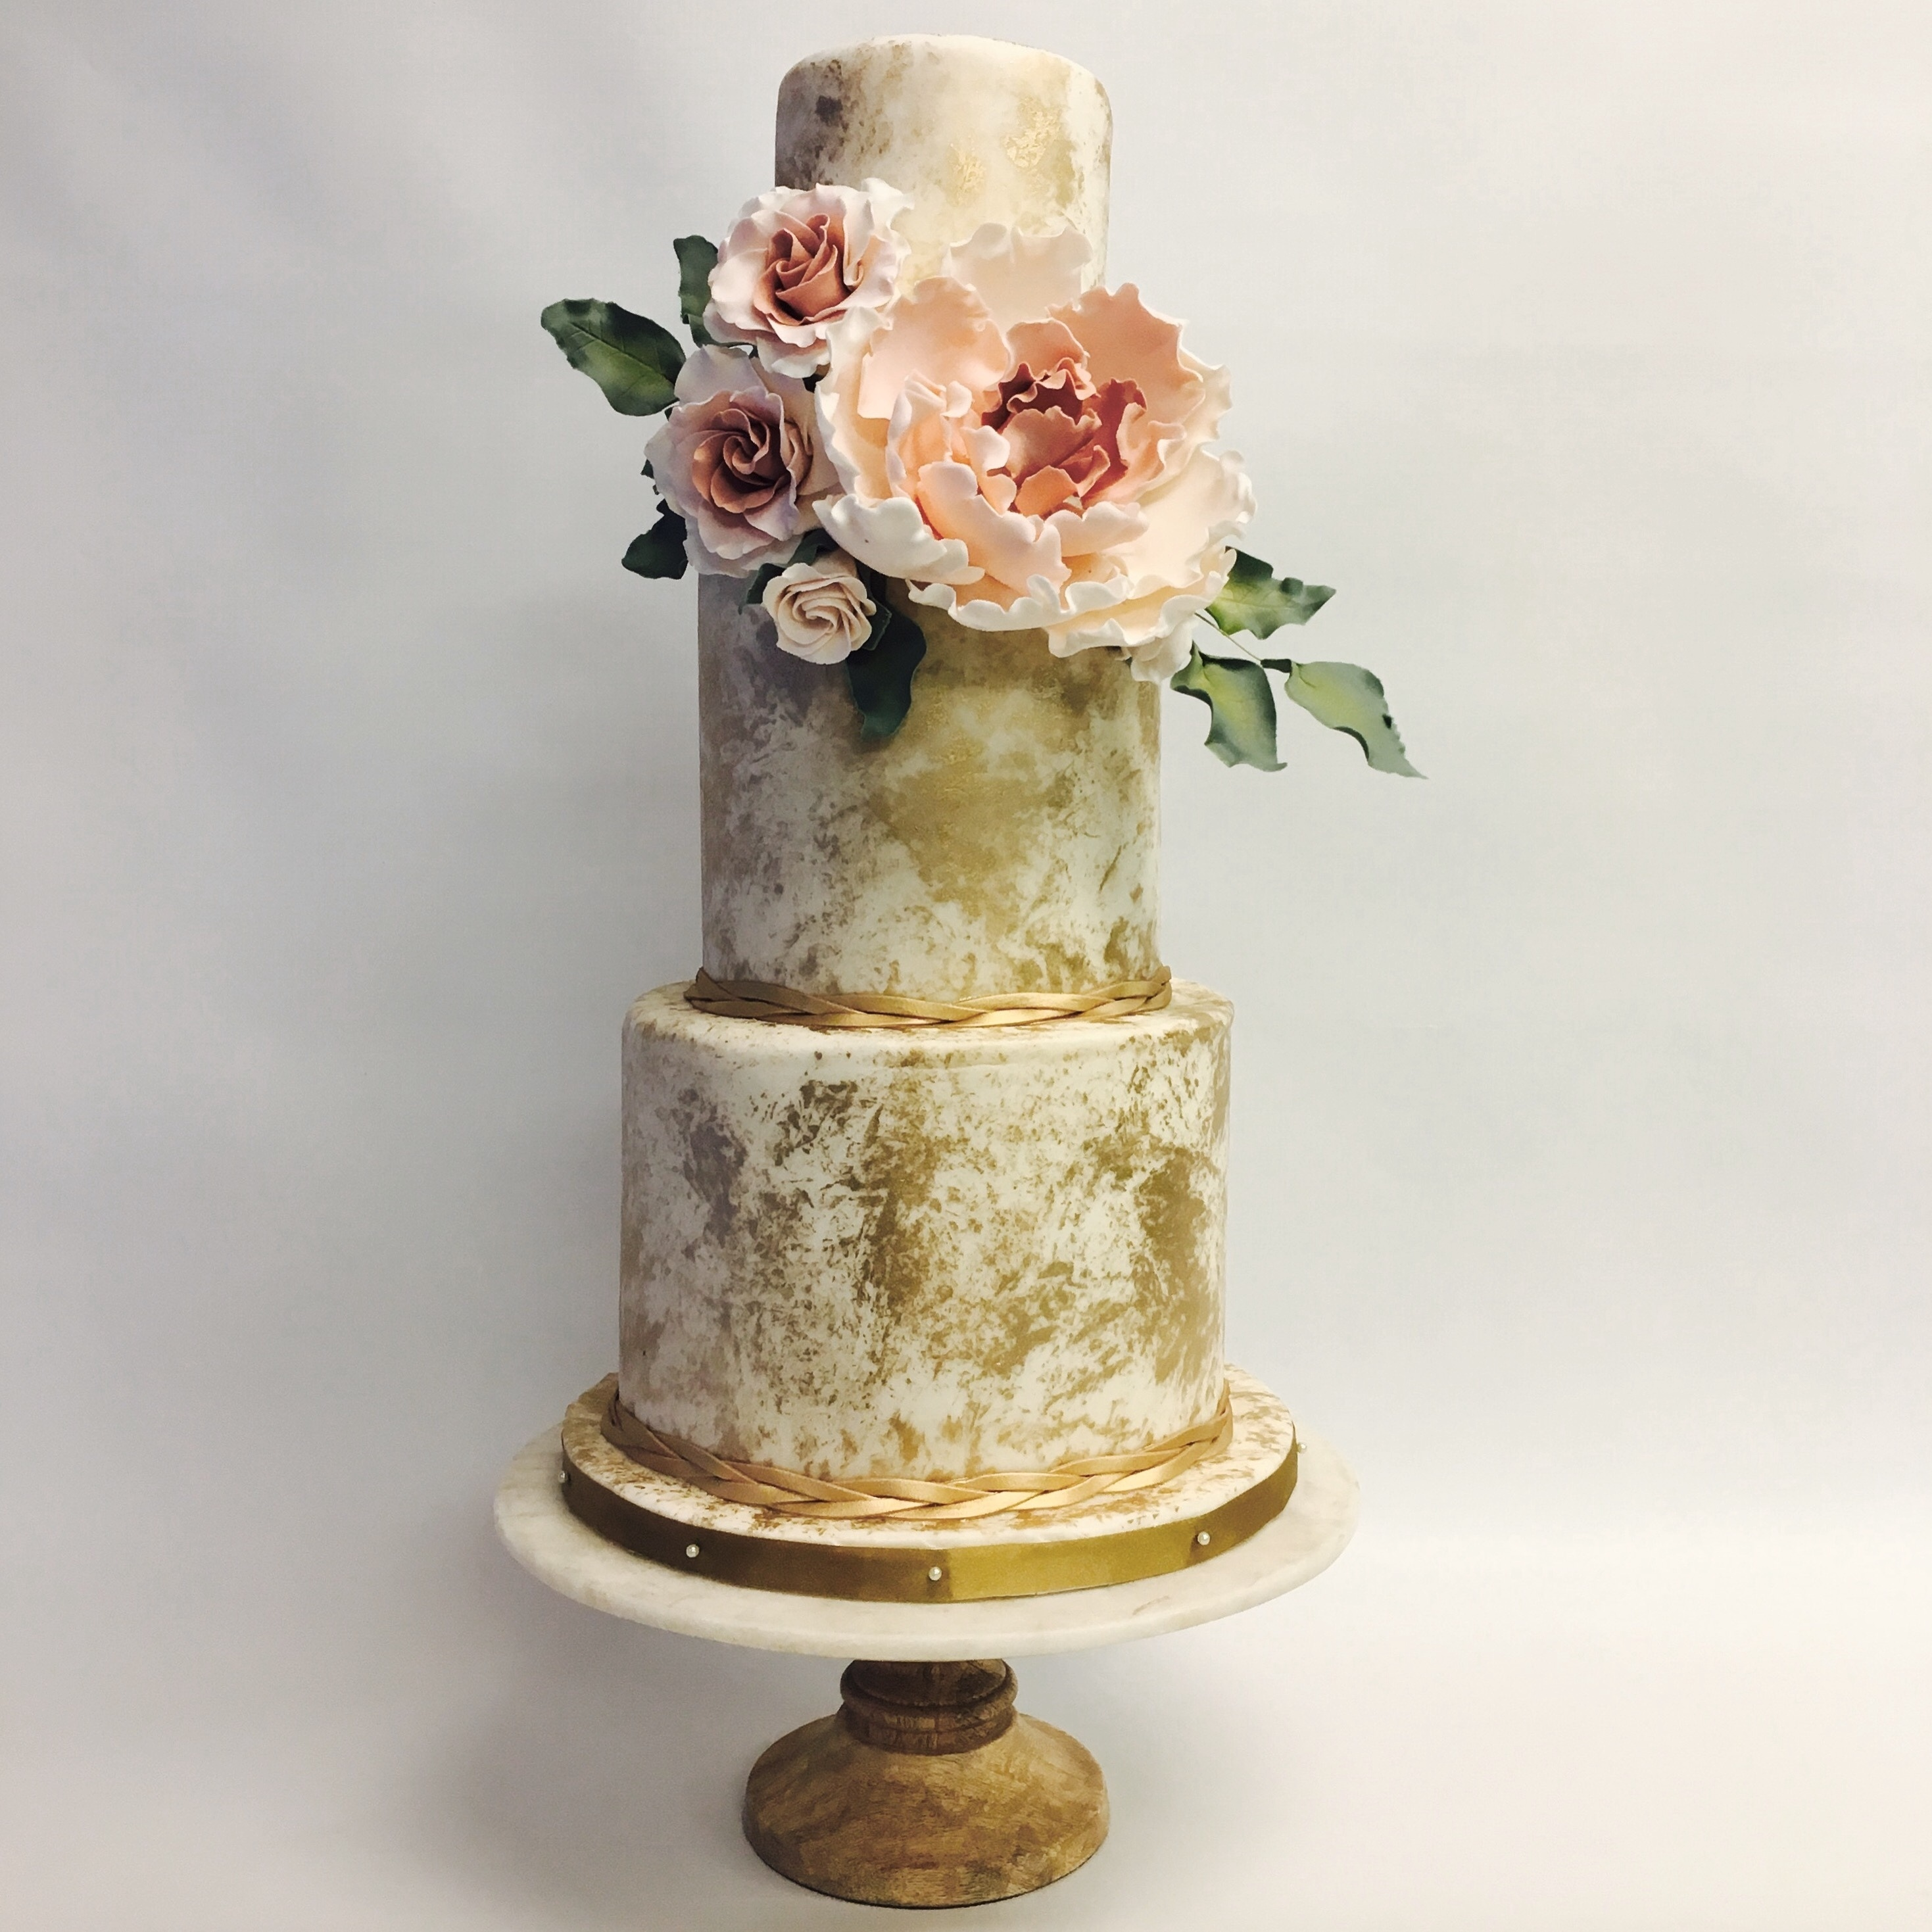 Ivory fondant wedding cake dipped in gold dust